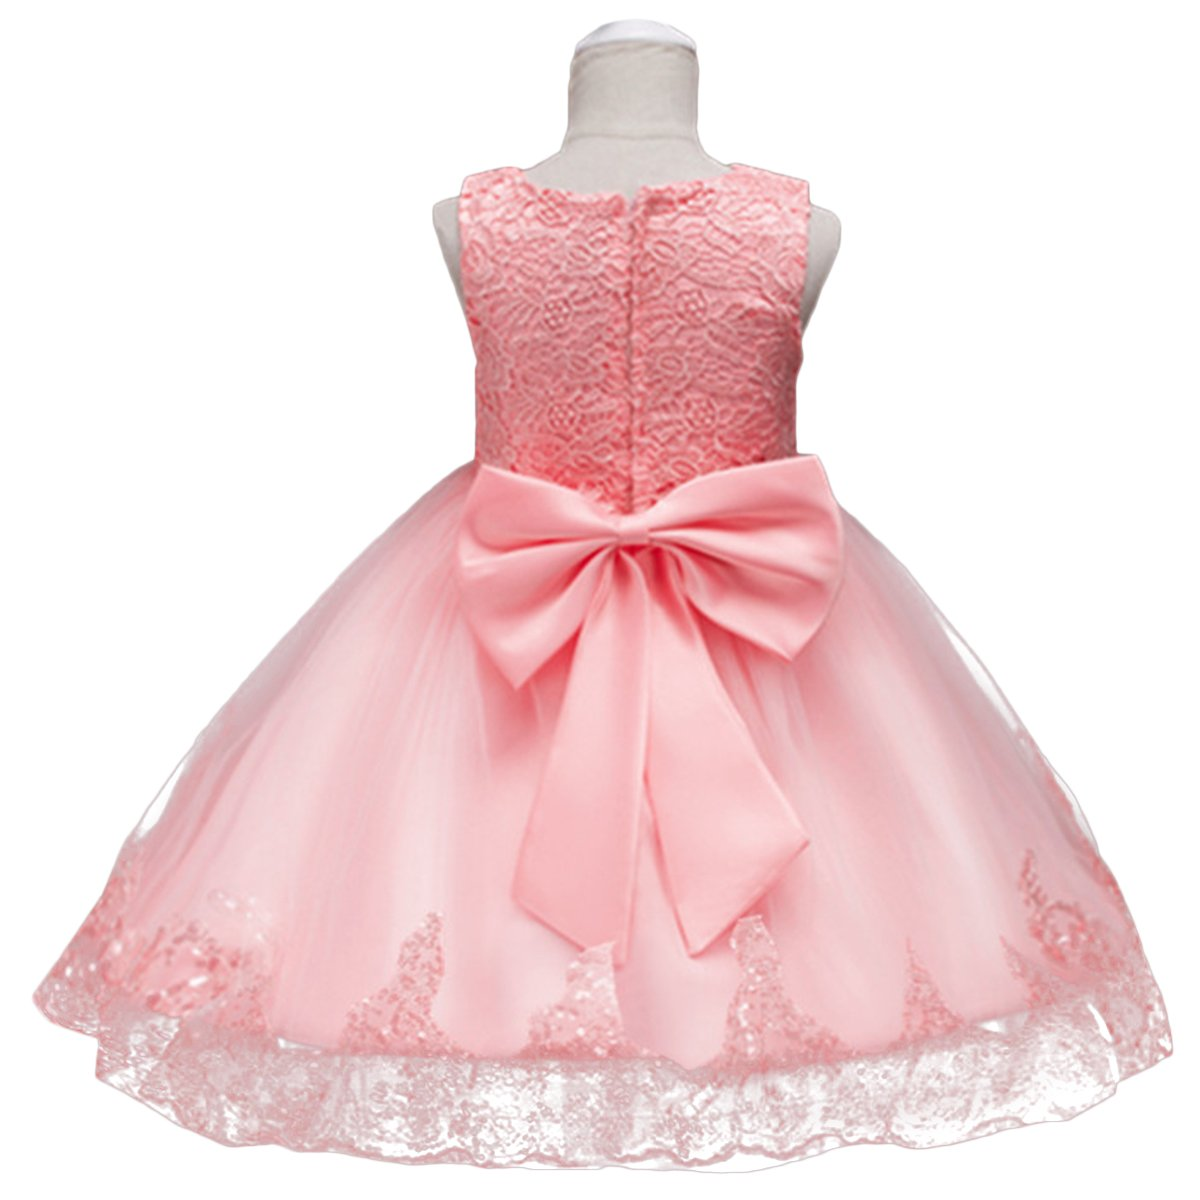 4cc8407aa Amazon.com: IBTOM CASTLE Kids Flower Girls Vintage Embroidered Sequins Dress  Short Trim Layered Wedding Baptism Pageant Party Gown: Clothing